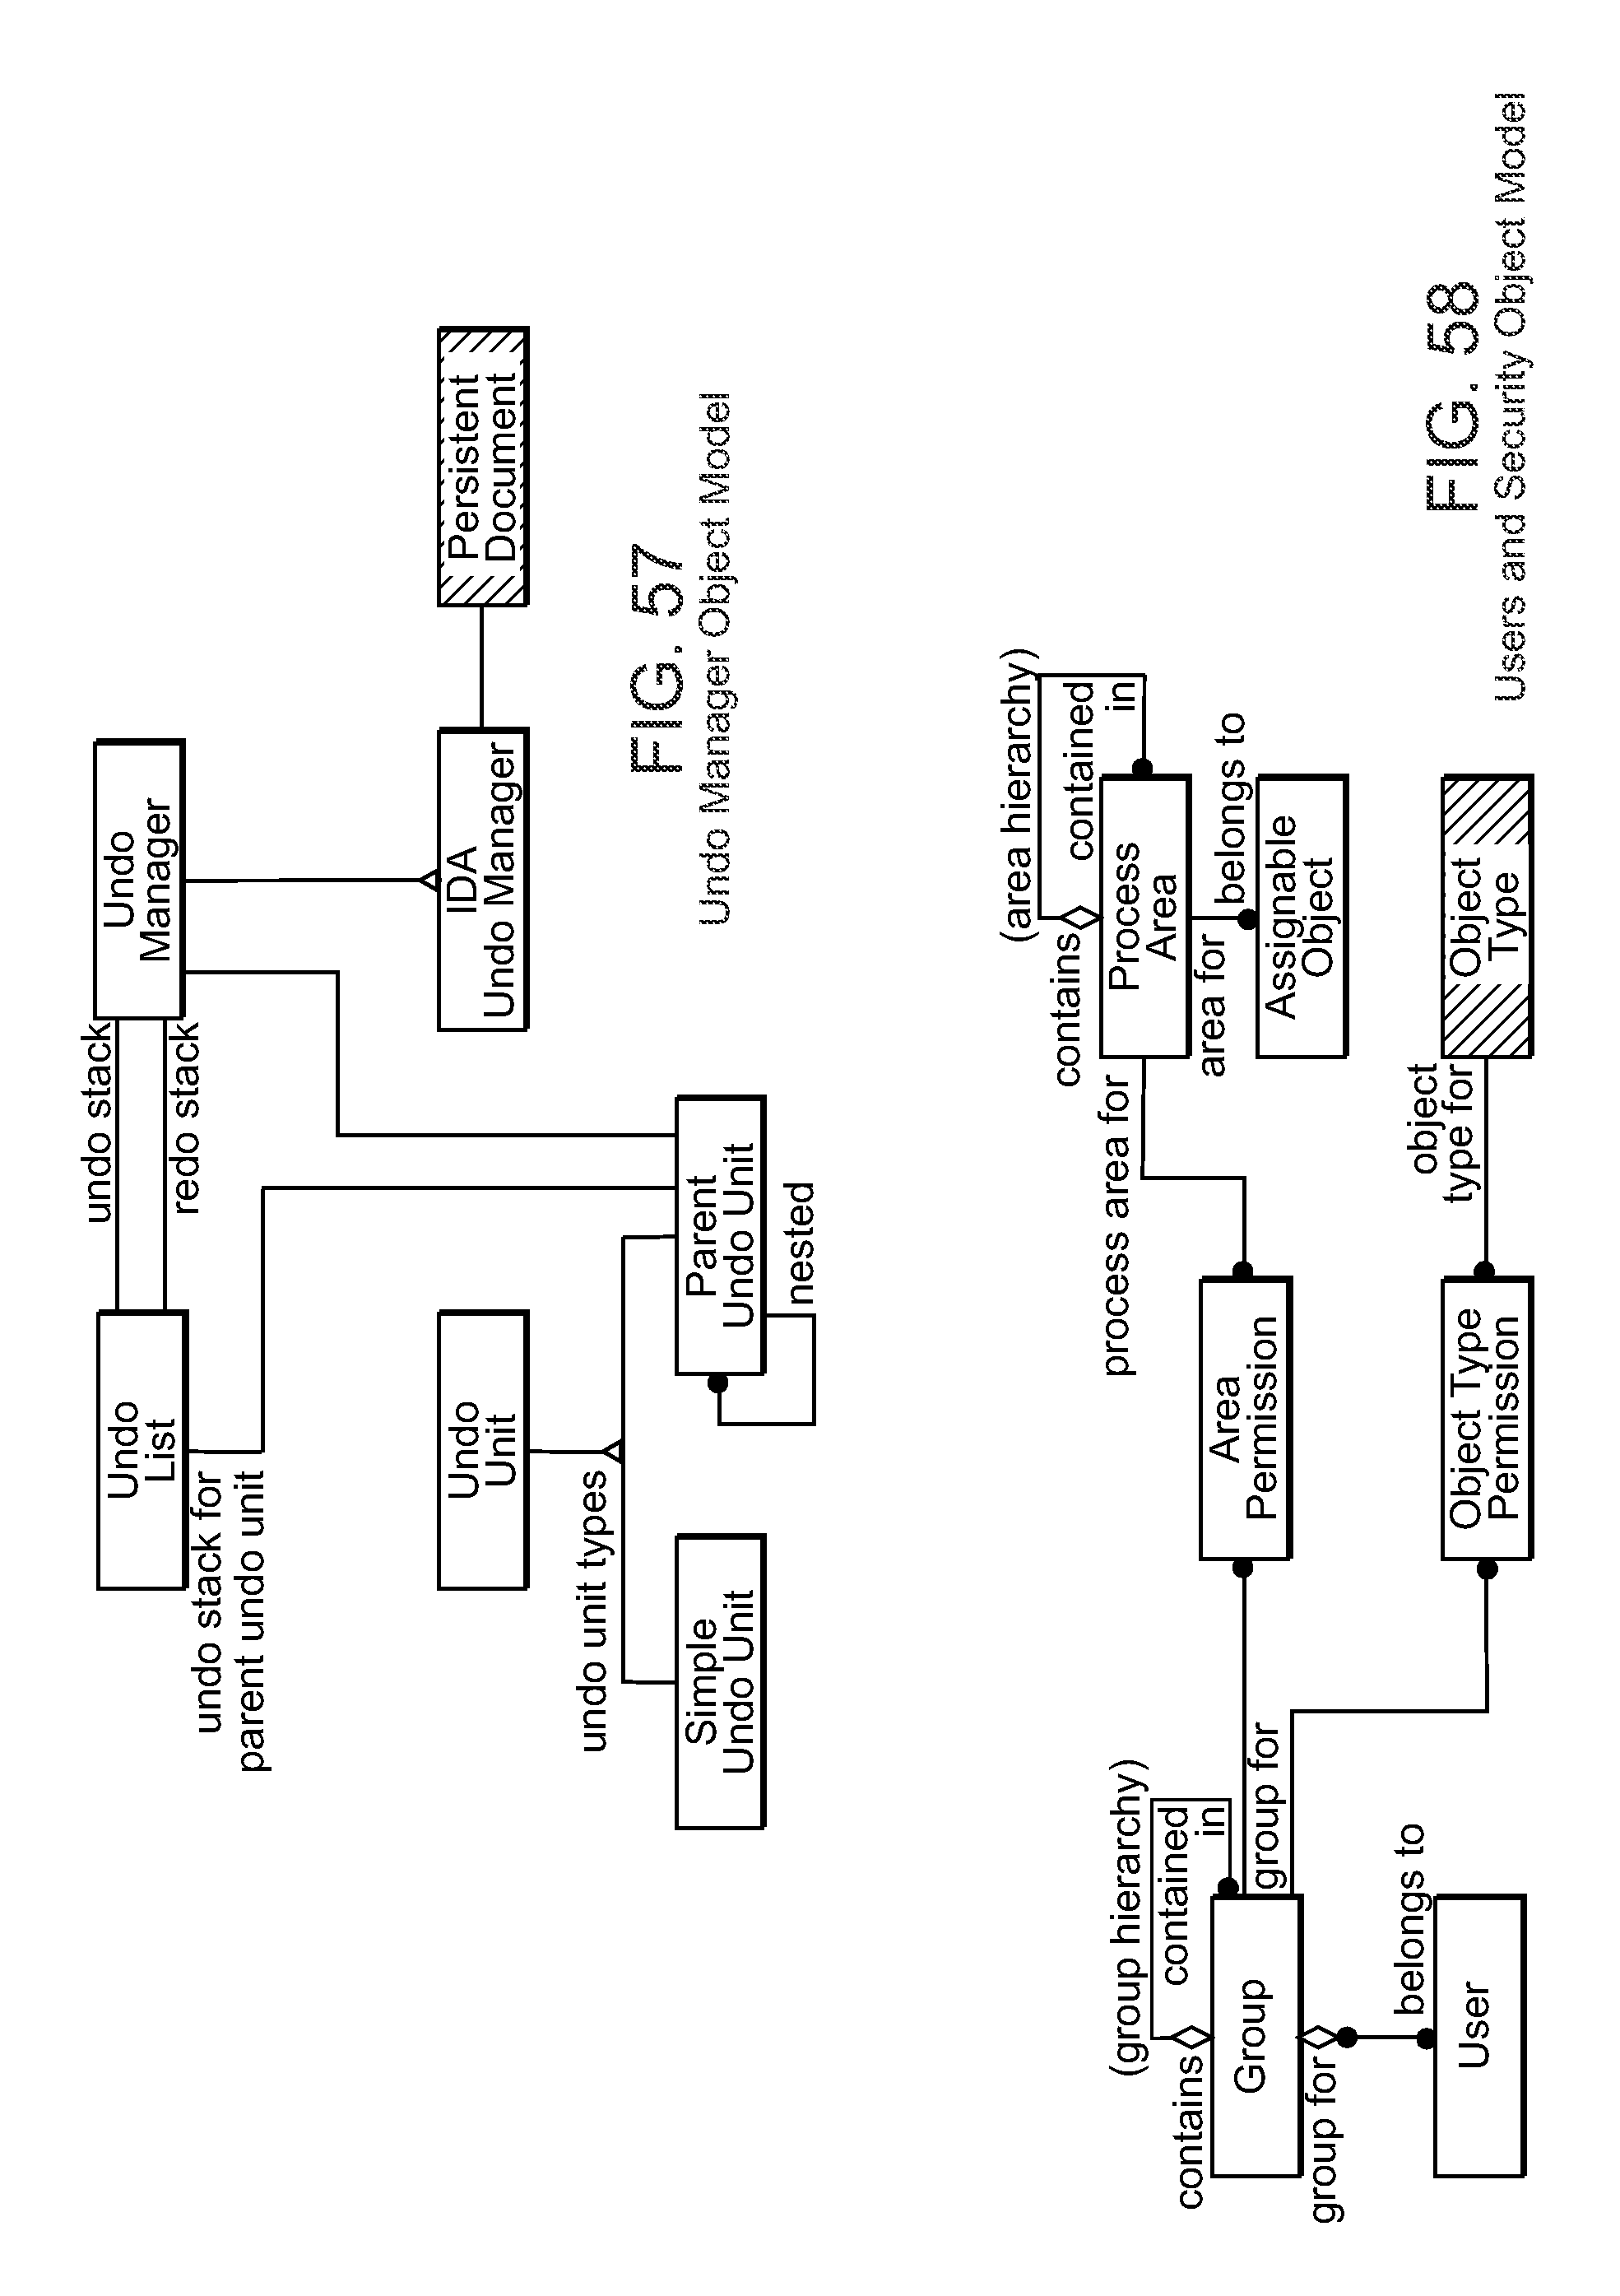 Patent Us 8229579 B2 Color Sensor Circuit Diagram Group Picture Image By Tag Images